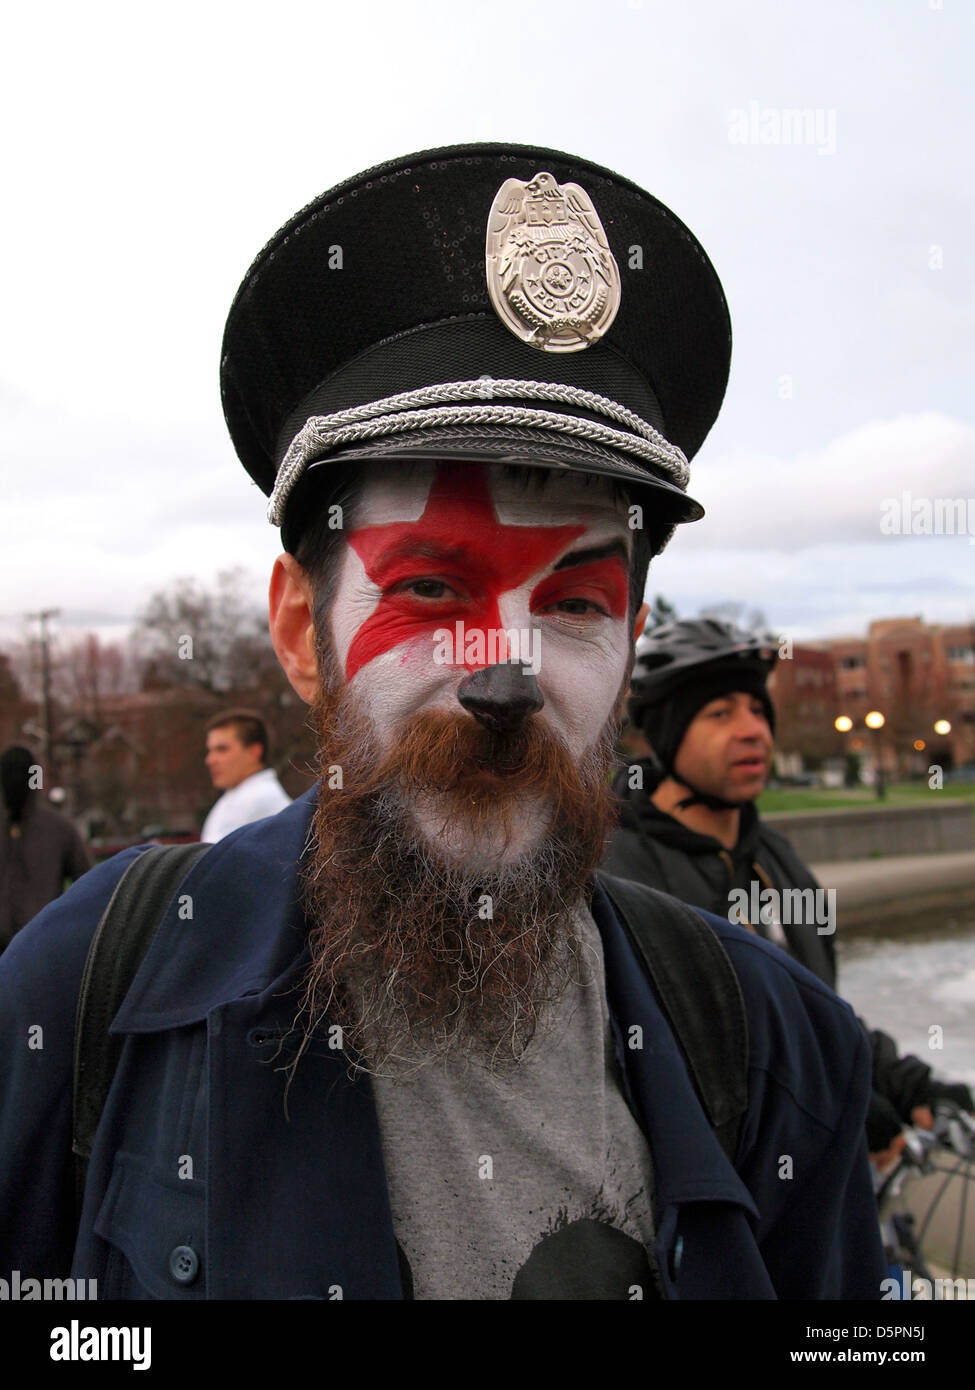 Protestor clown at an anti-police demonstration in Seattle, Washington, USA - Stock Image